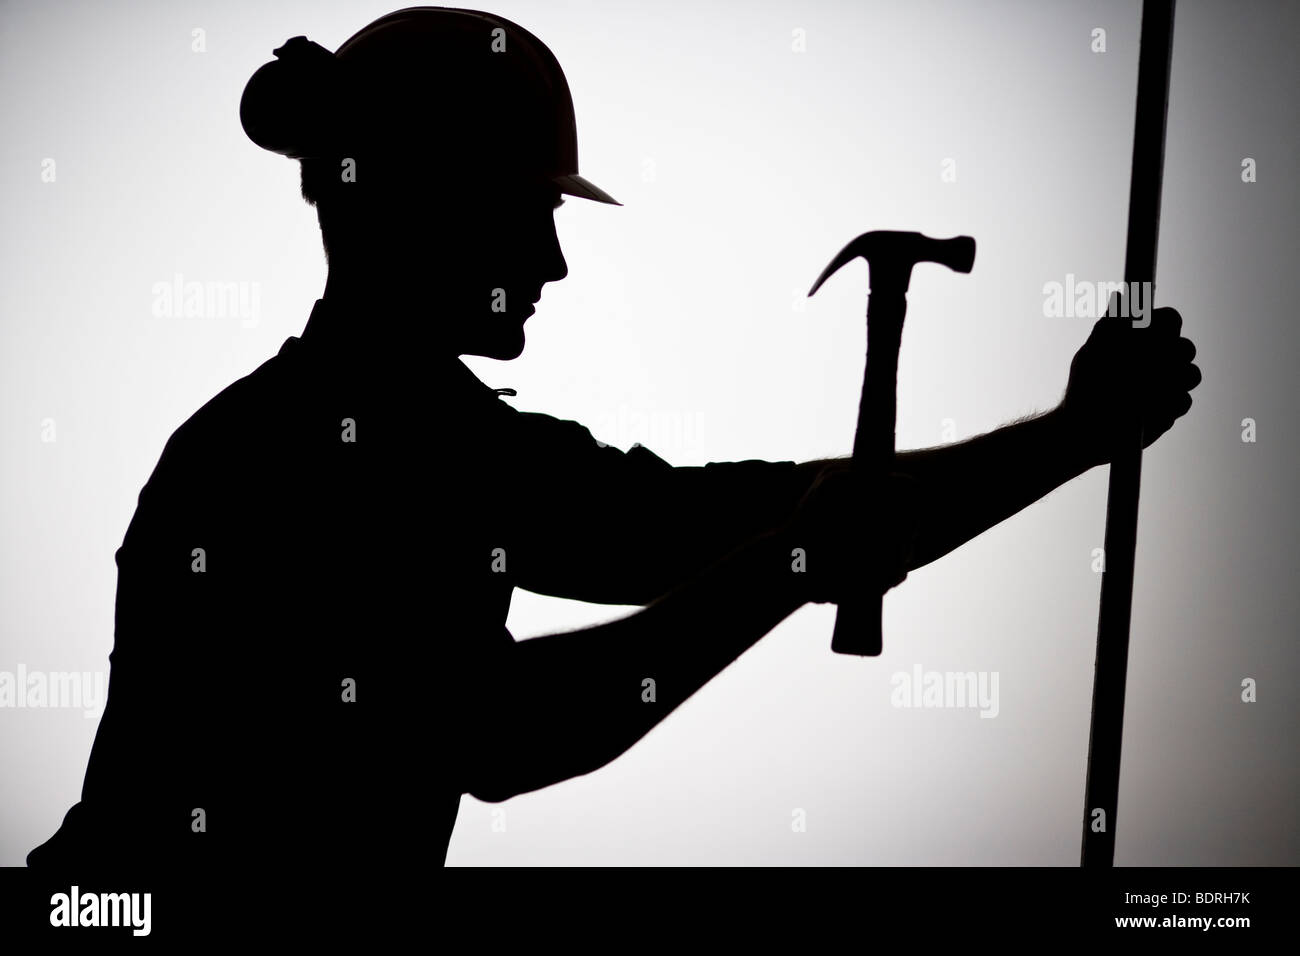 A construction worker using a hammer. - Stock Image